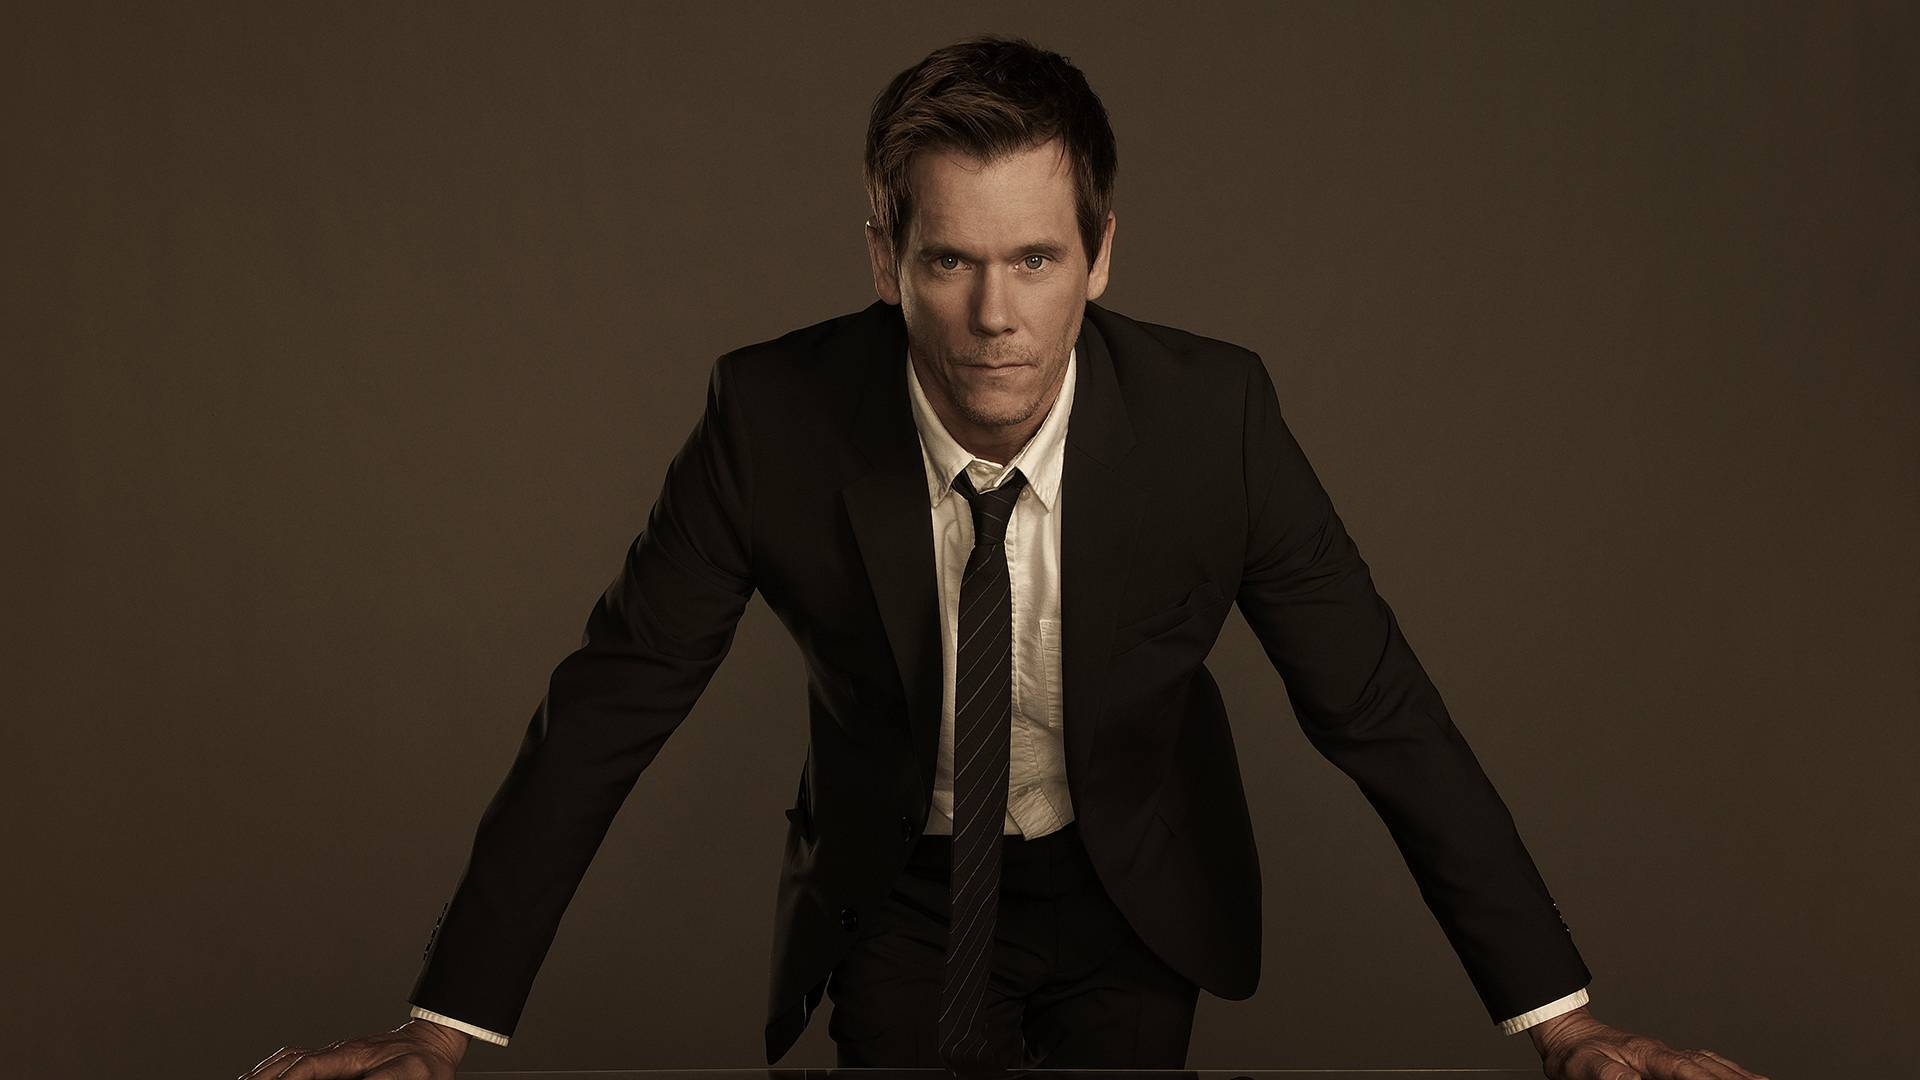 kevin bacon wallpaper 1920x1080